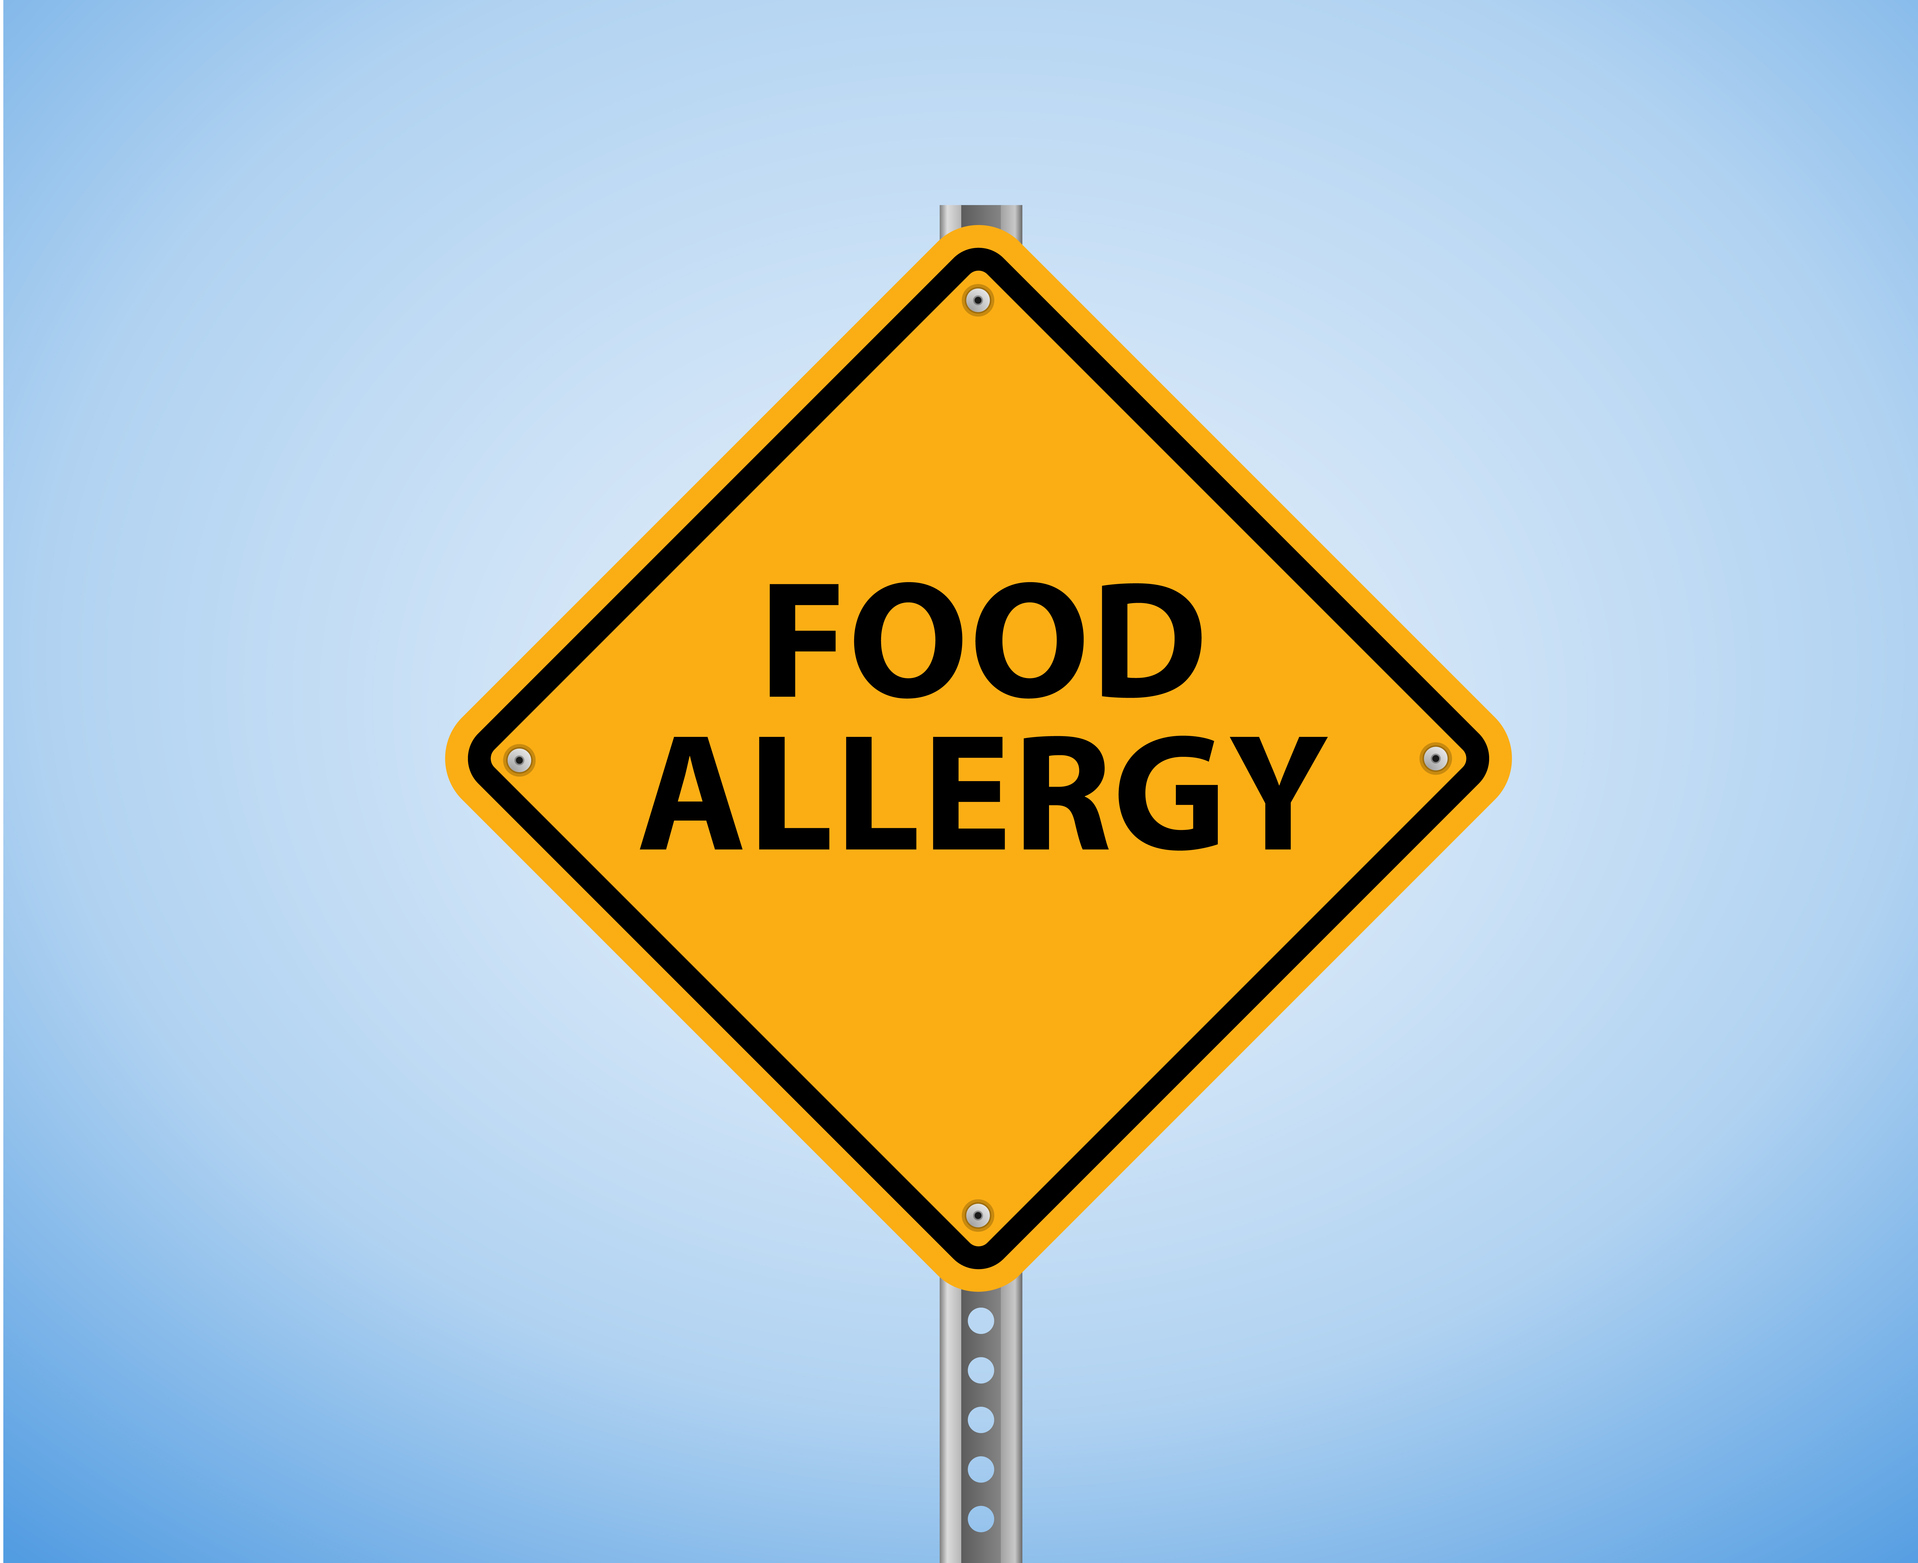 What Are the Most Common Food Allergies in Adults